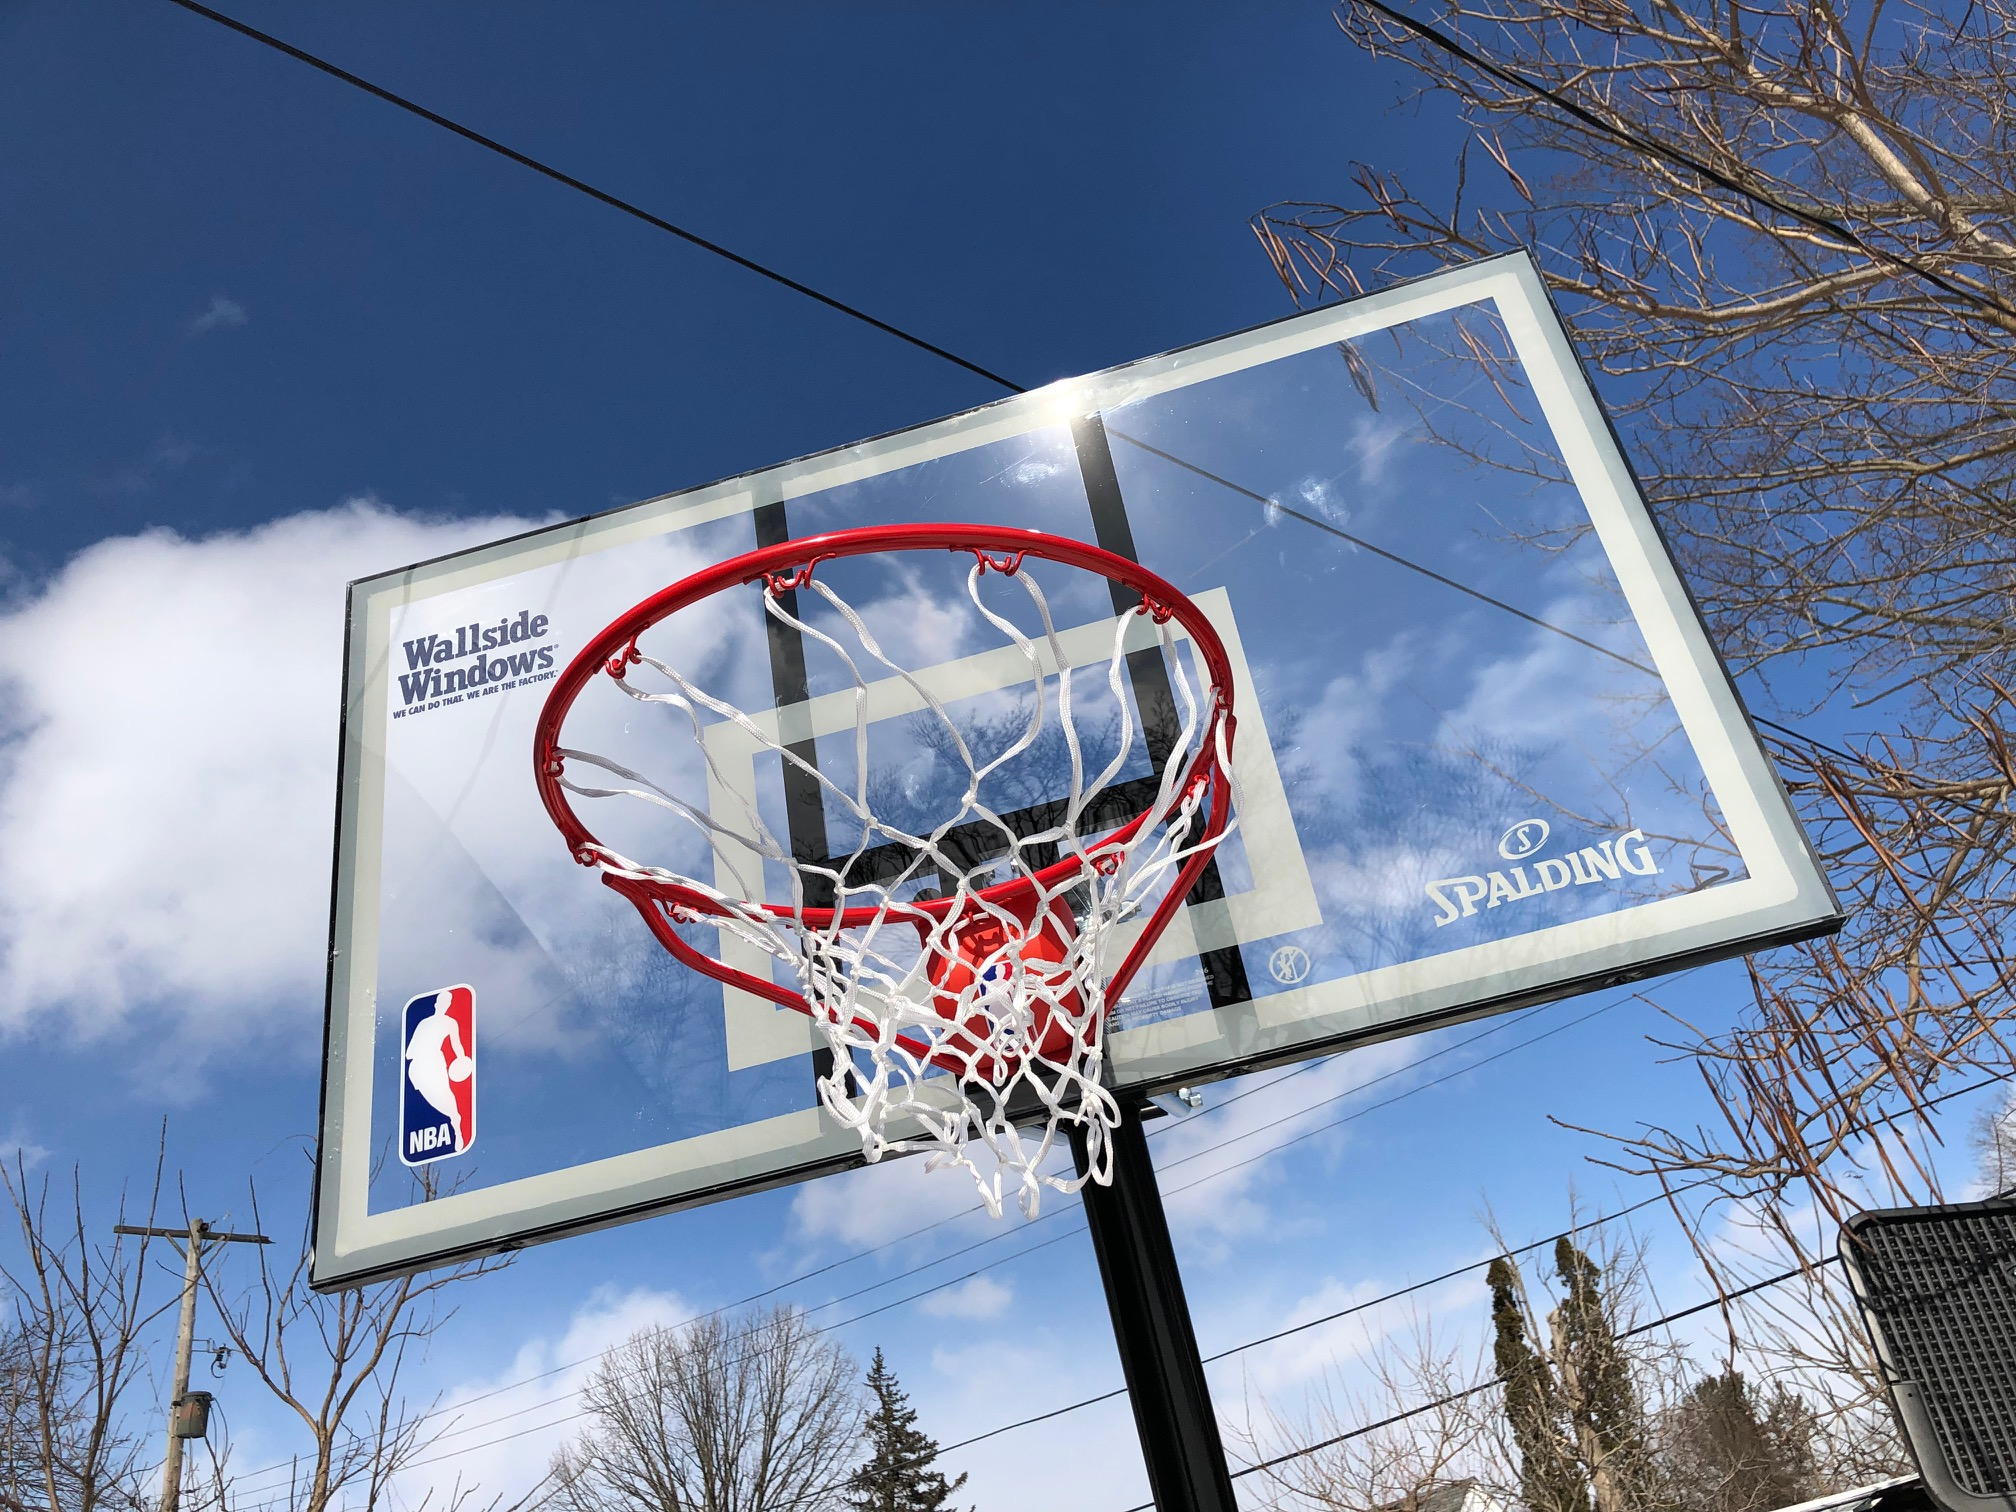 This branded backboard was among the gifts the Hill family received from Wallside Windows and the Detroit Pistons.